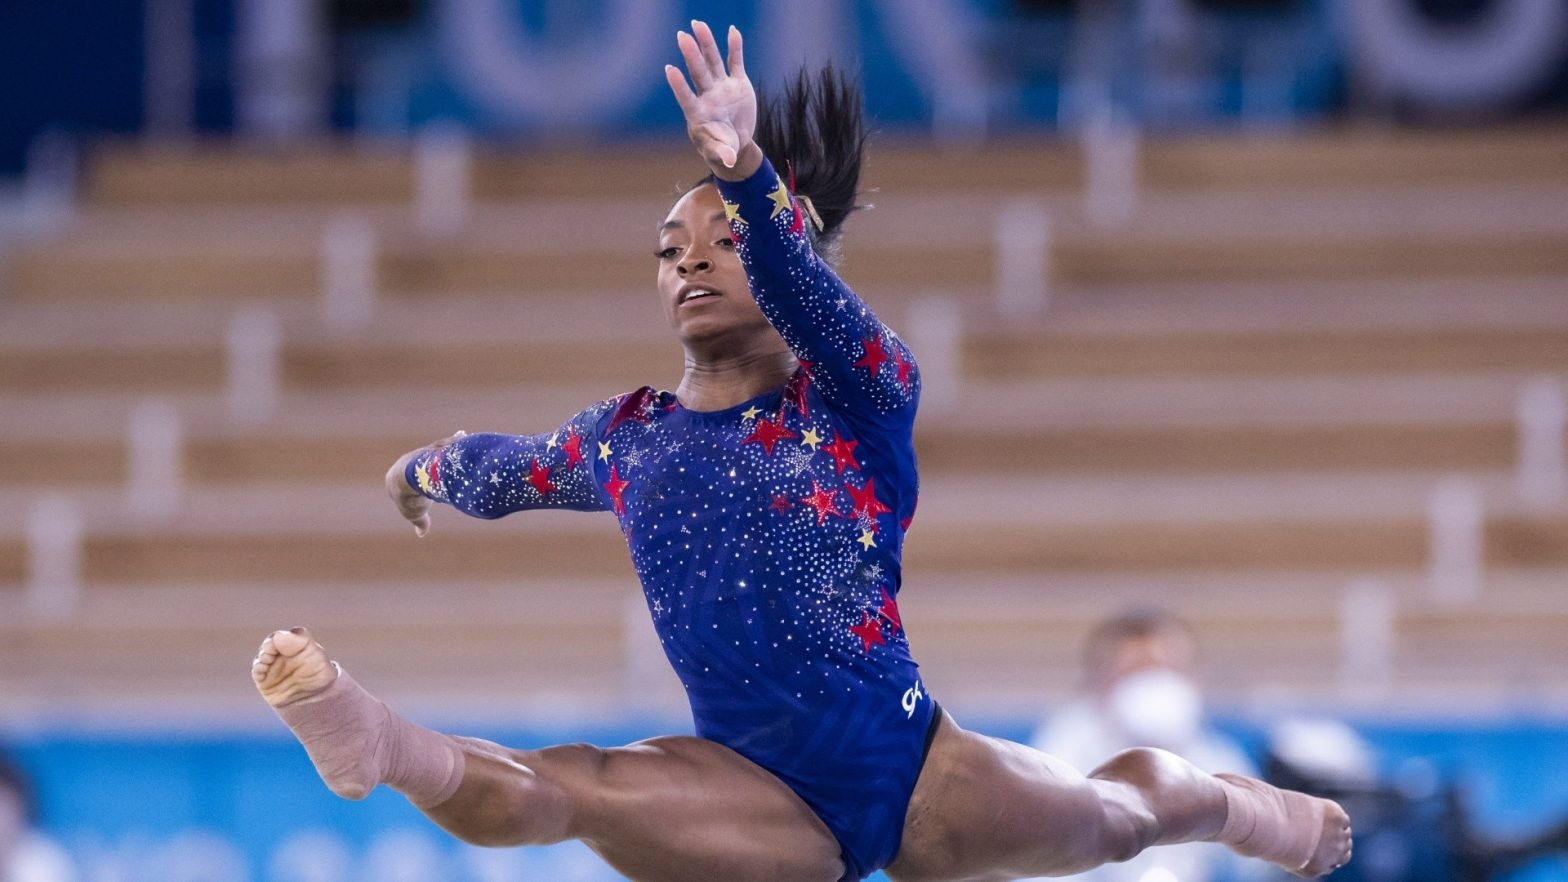 simone-biles-receives-outpouring-of-support-from-olympians,-celebrities